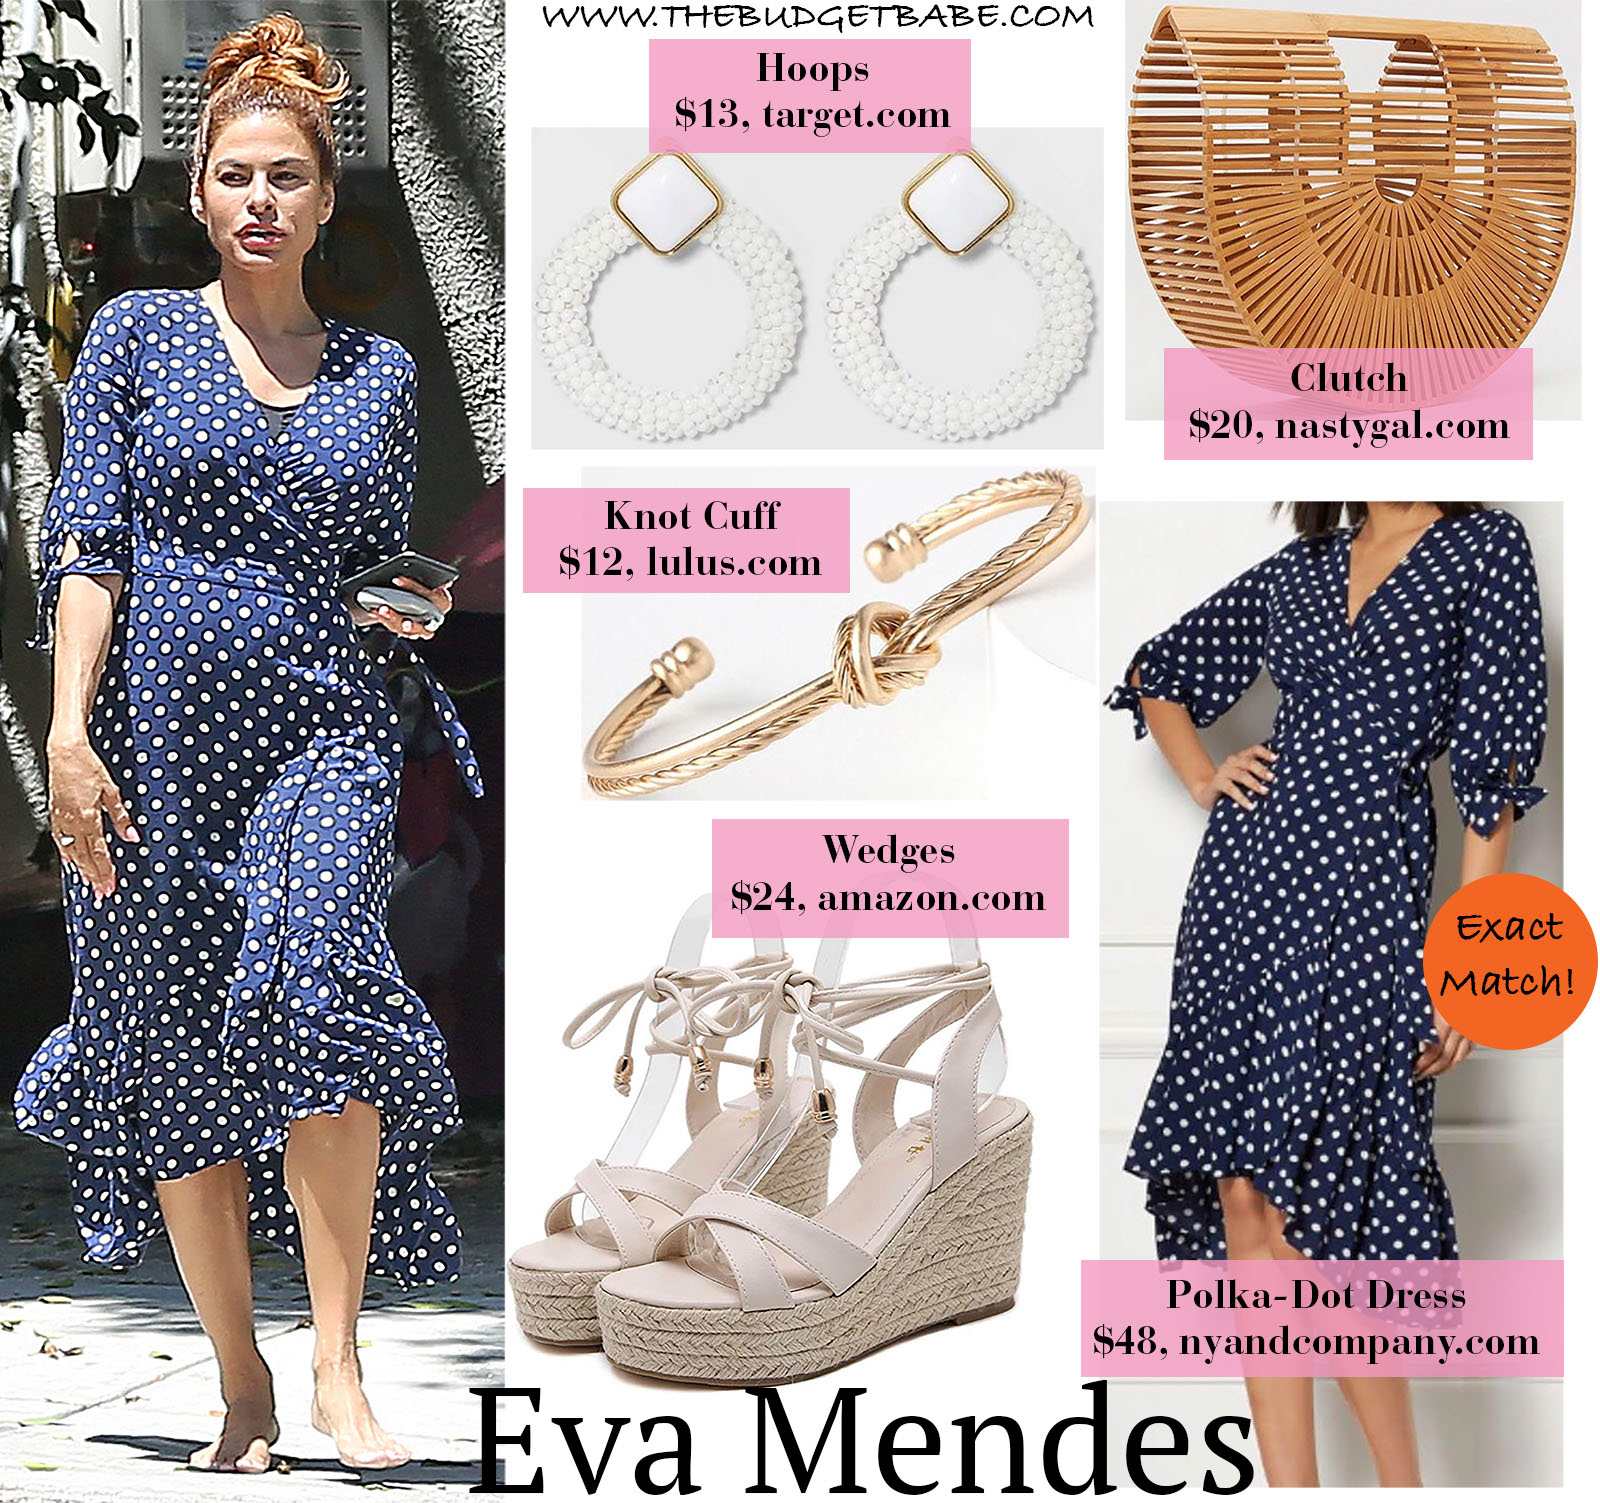 Eva Mendes Polka-Dot Wrap Dress